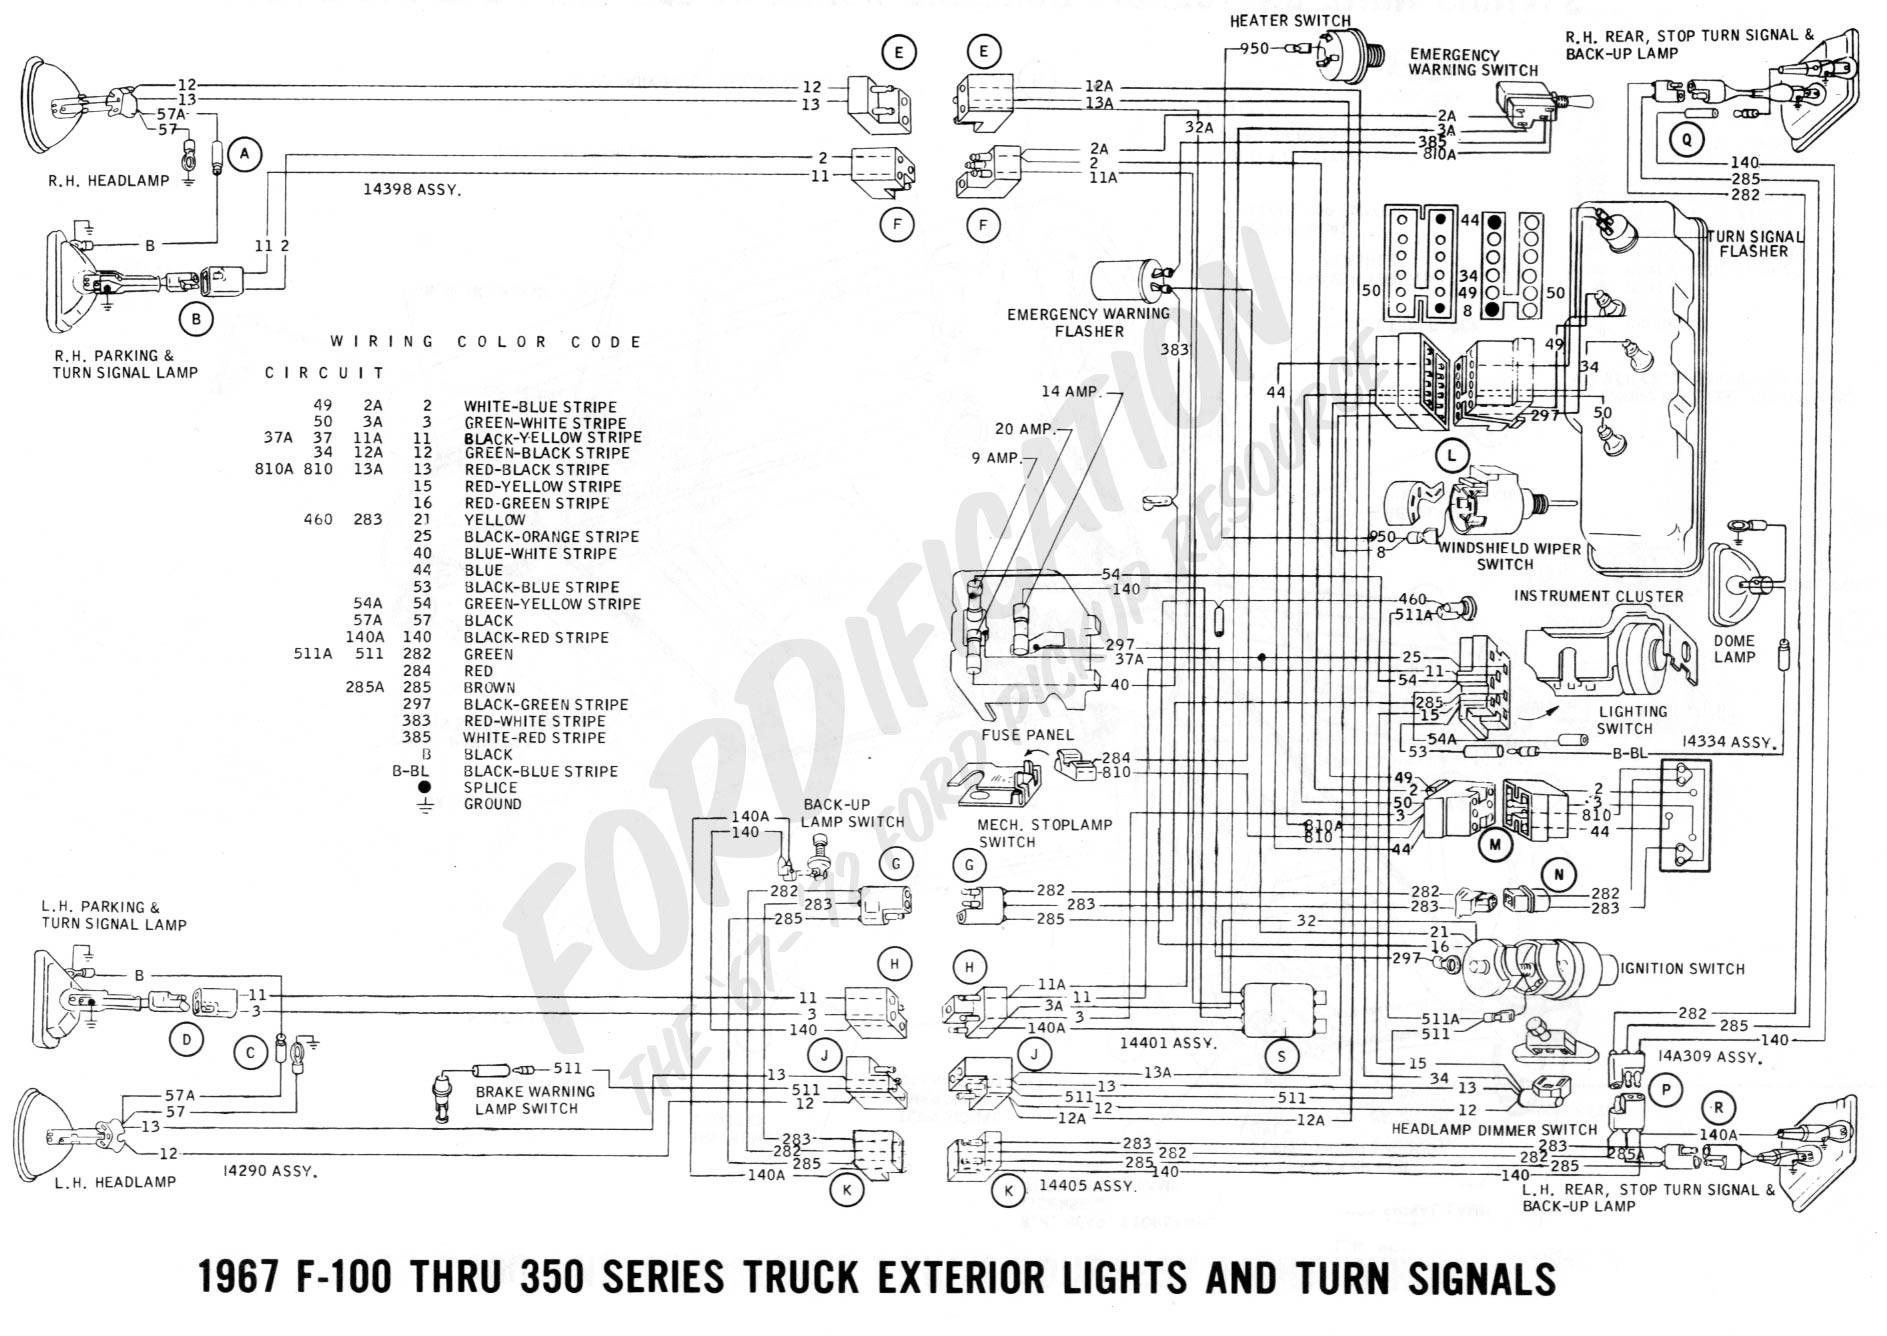 1965 chevy 283 alternator wiring diagram wiring diagram split 283 wiring diagram 1960 f100 wiring diagram wiring diagram rows 1965 chevy 283 alternator wiring diagram